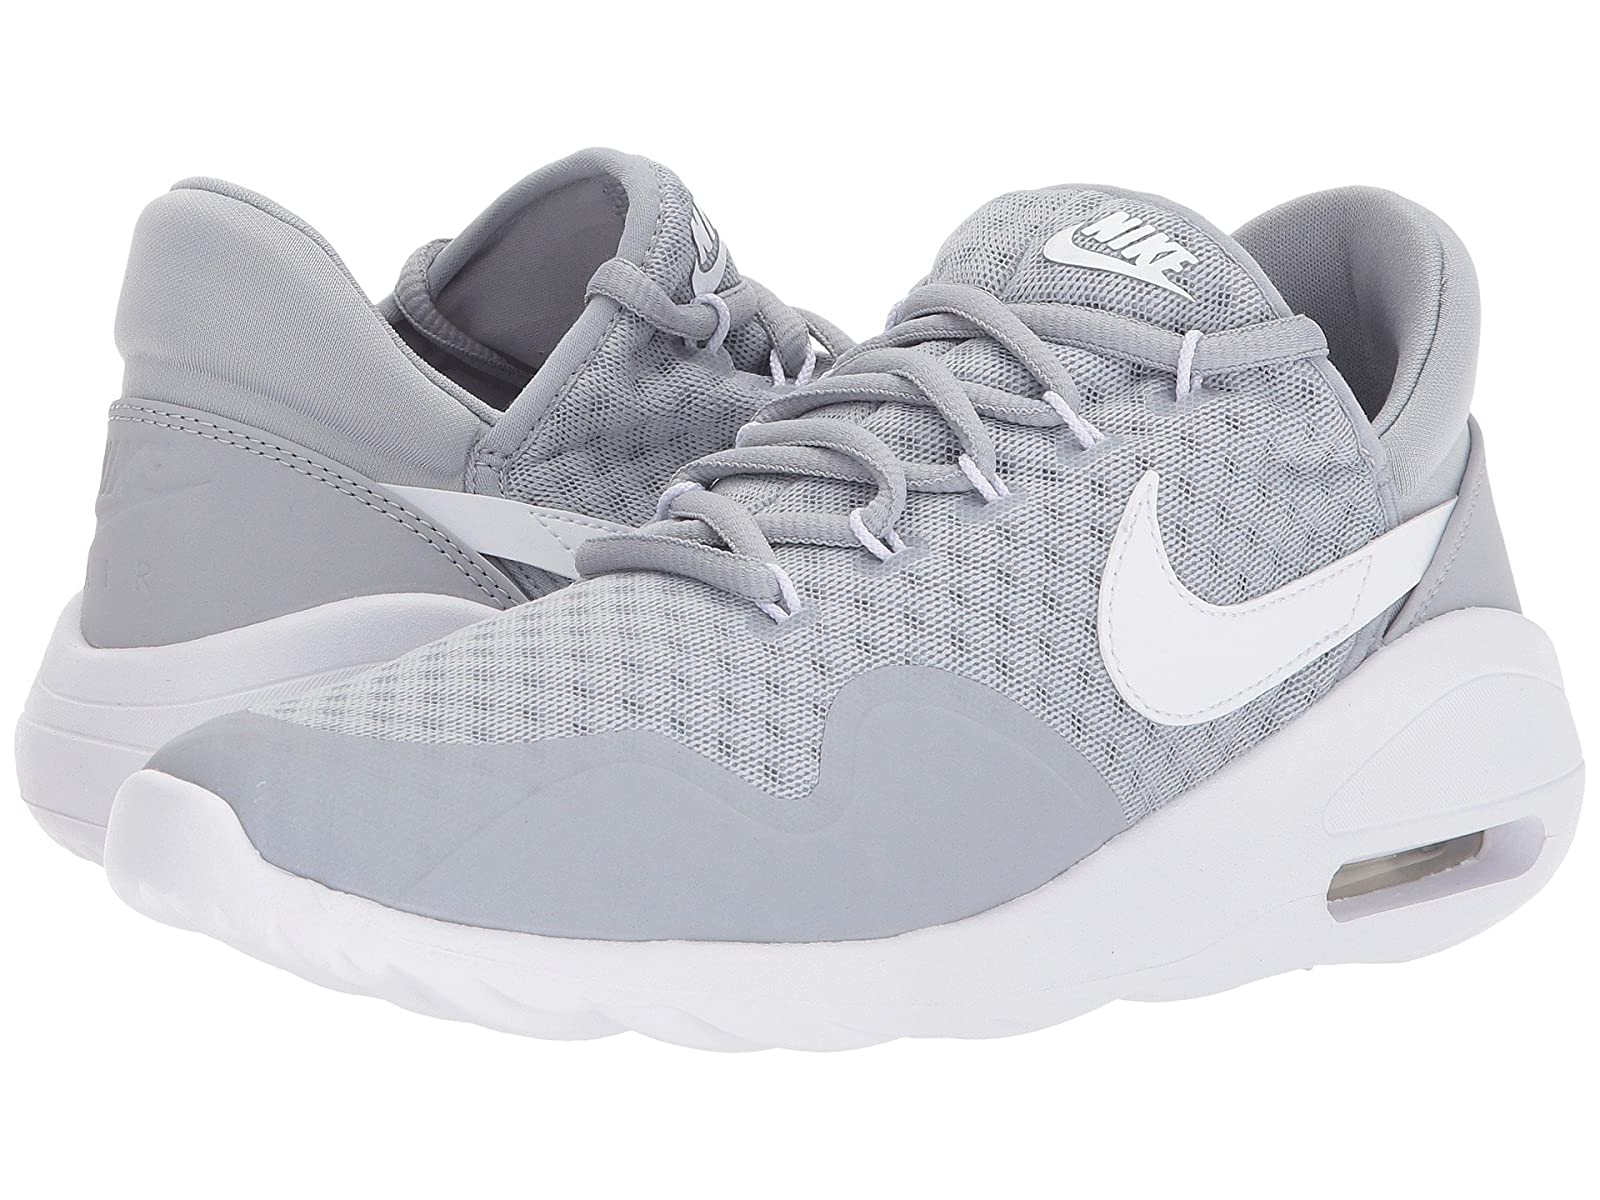 Men's/Women's-Nike Air Attractive Max Sasha -Fashionable and Attractive Air Packages 56590f